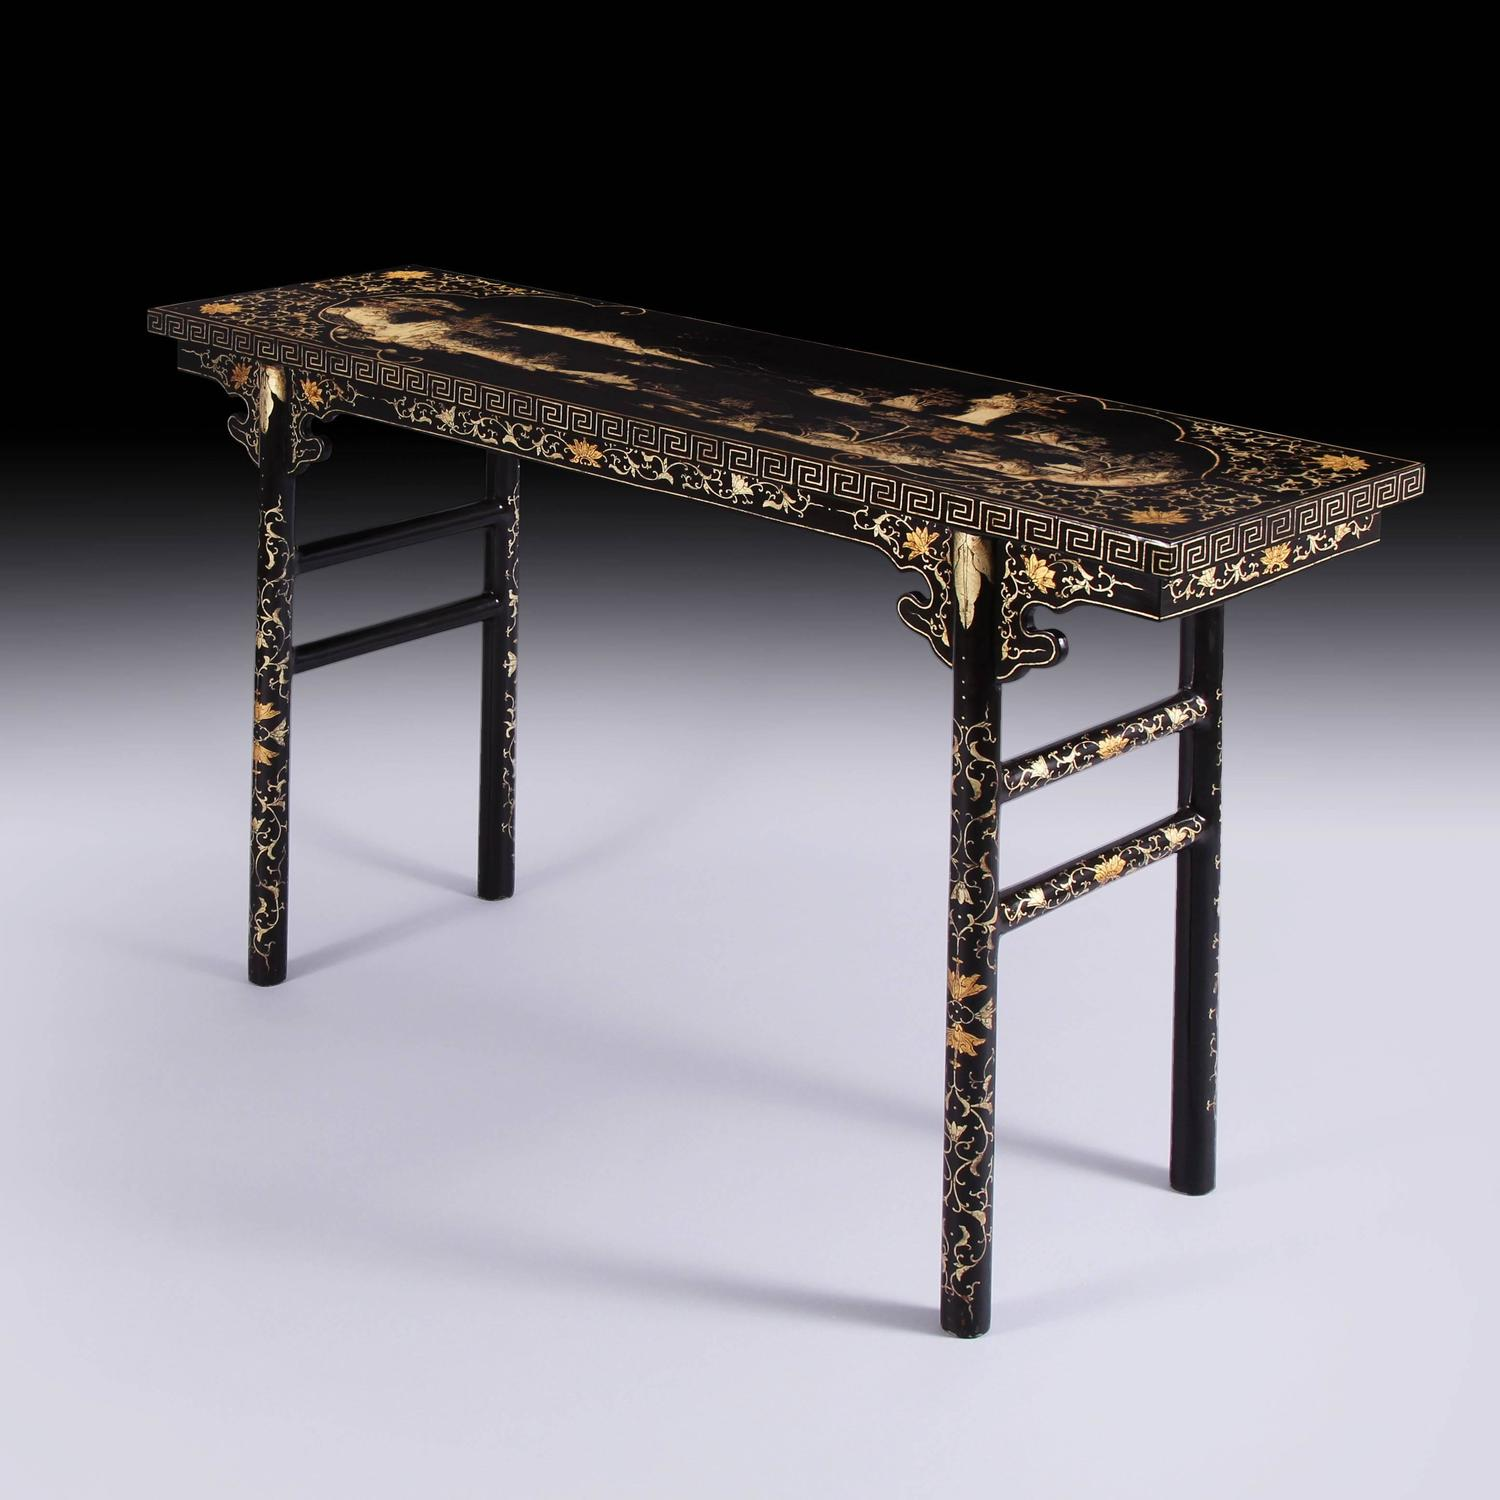 Antique chinese table early 19th century black lacquer for Antique chinese tables for sale